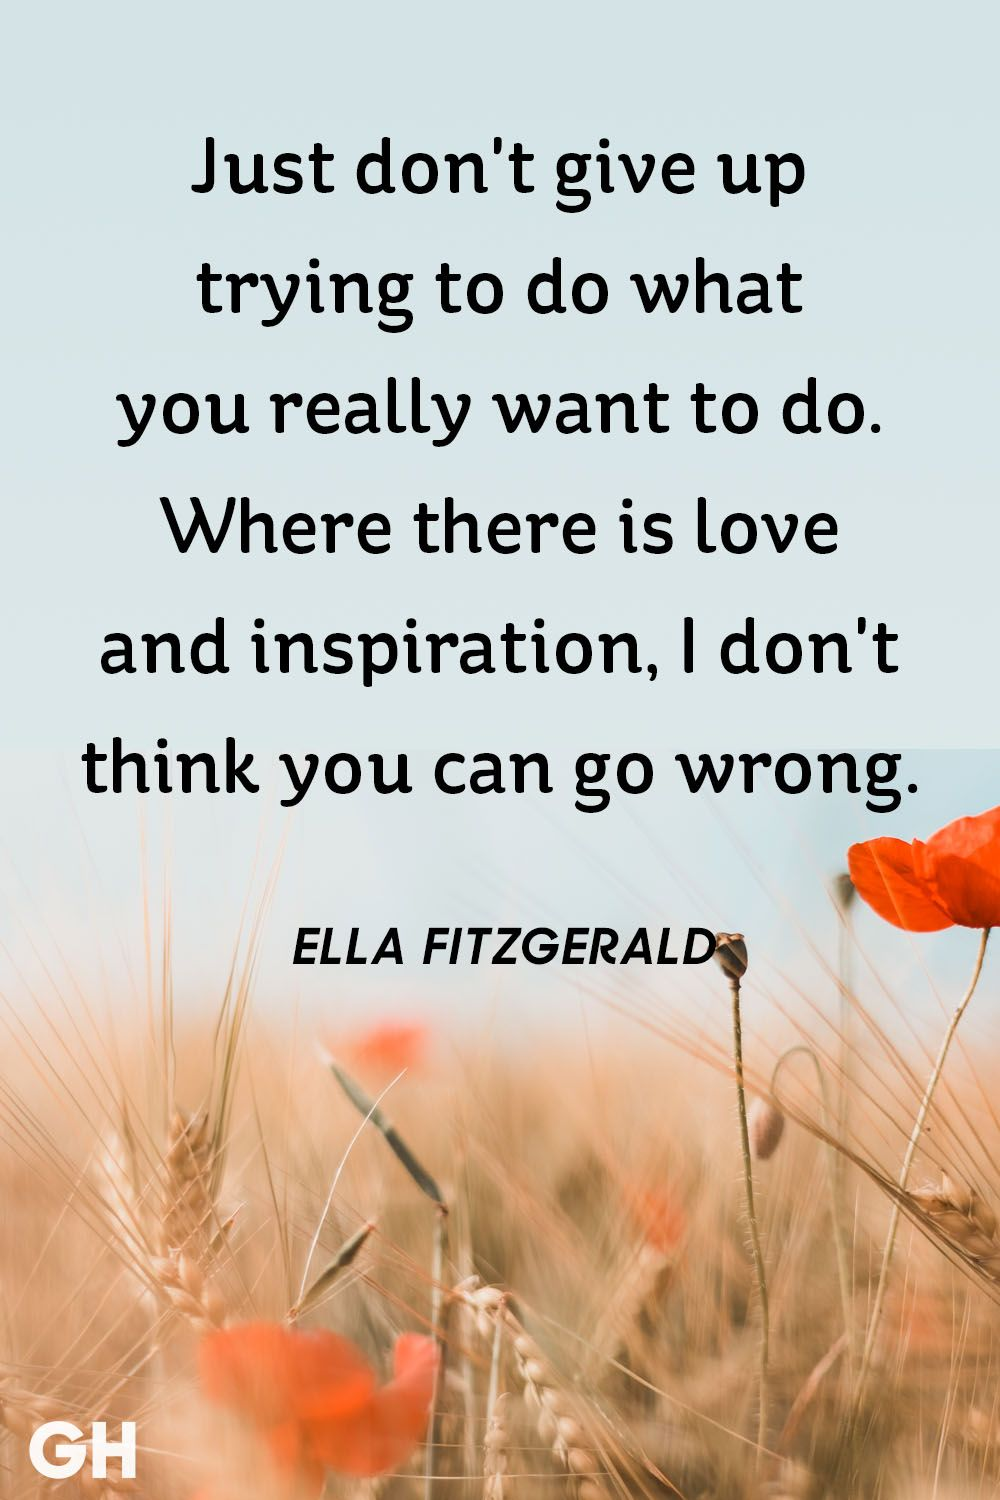 Uplifting Ella Fitzgerald Inspirational Quote Good Housekeeping 41 Short Inspirational Quotes We Love Best Positive Inspiring Sayings